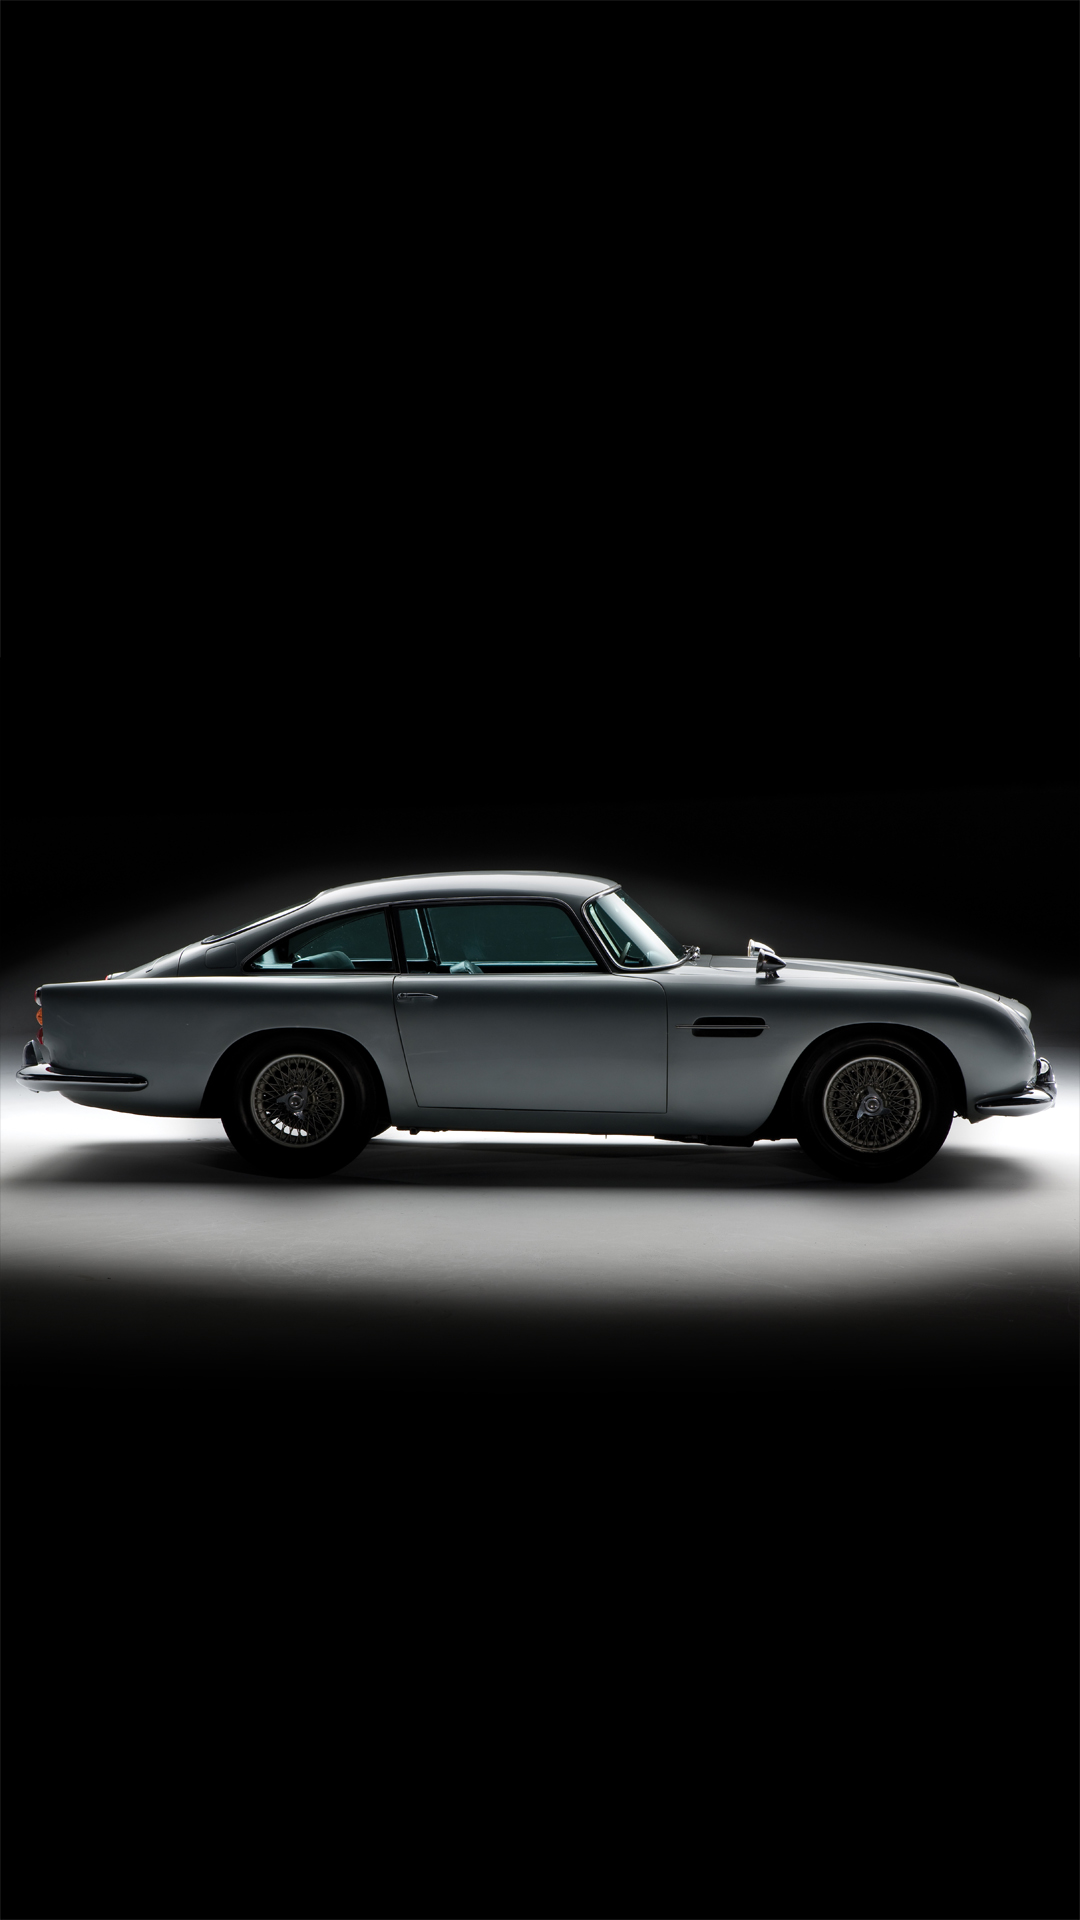 Aston Martin DB5 htc one wallpaper